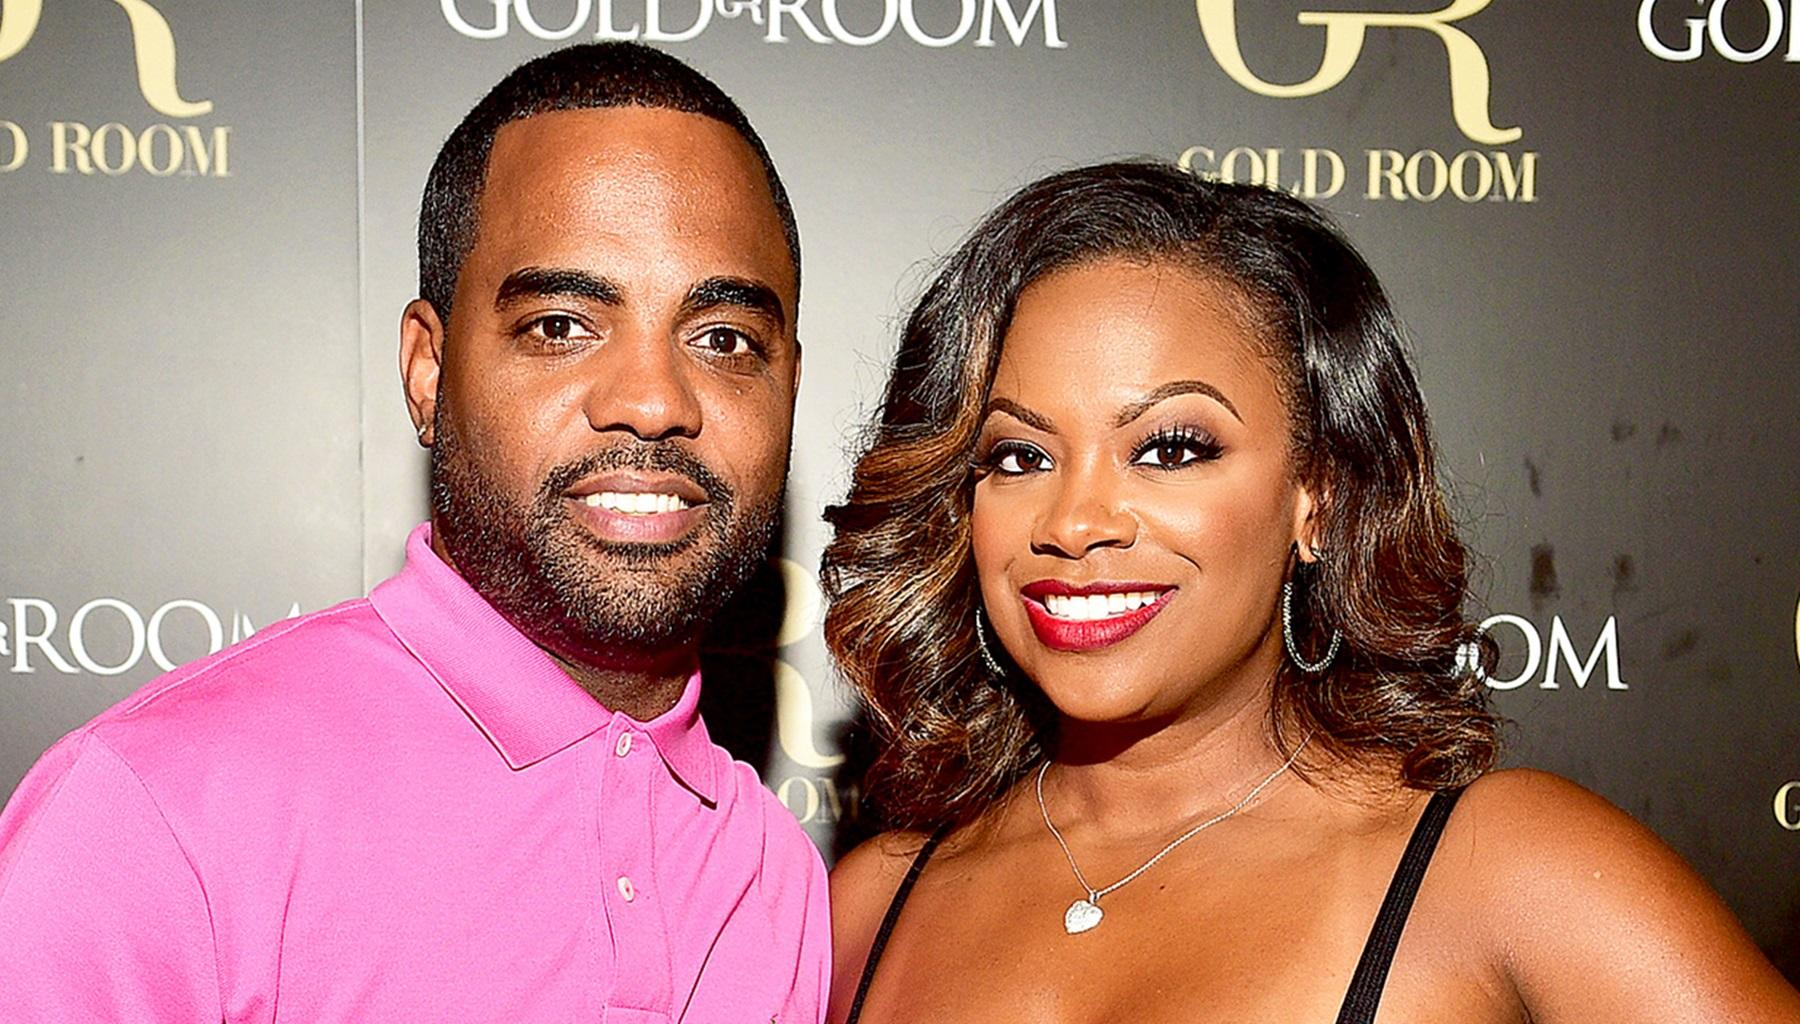 Kandi Burruss Shares First Photo Of Her Baby Girl, Blaze Tucker, Featuring Proud Dad Todd Tucker -- Real Housewives of Atlanta Fans Are In Love